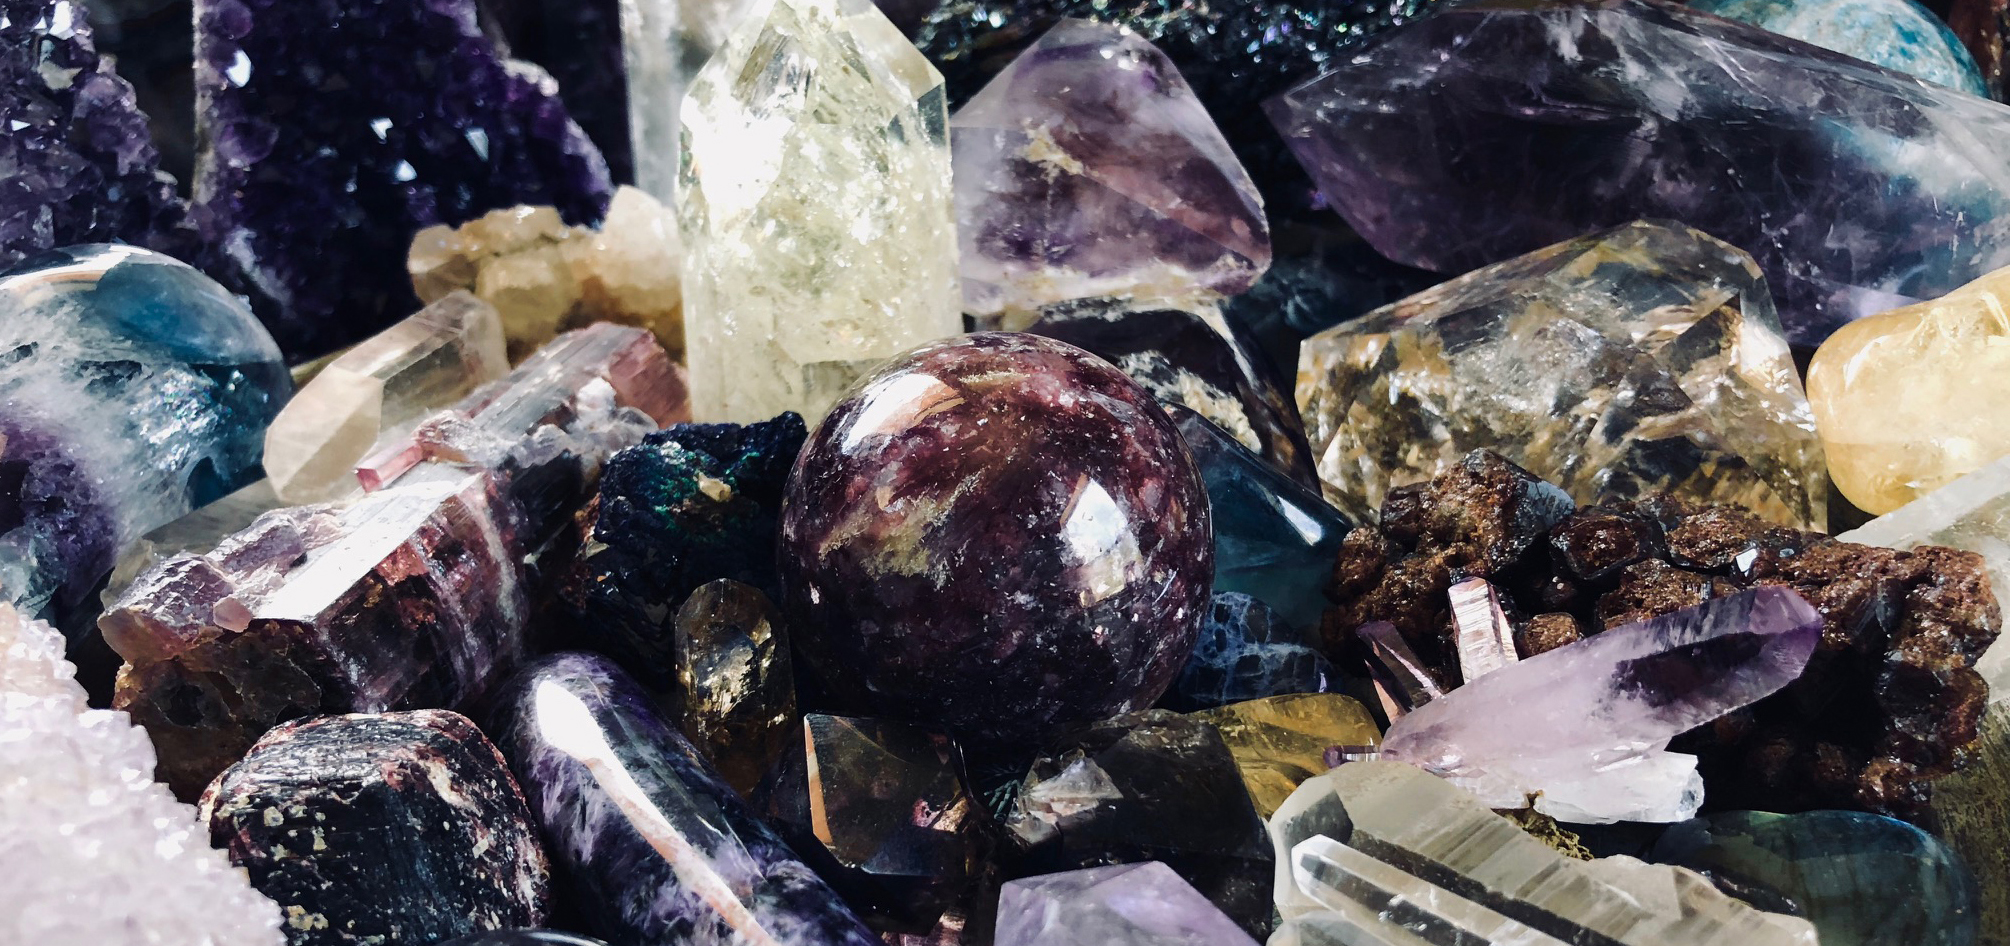 gem-show-crystals-white-magic.jpg